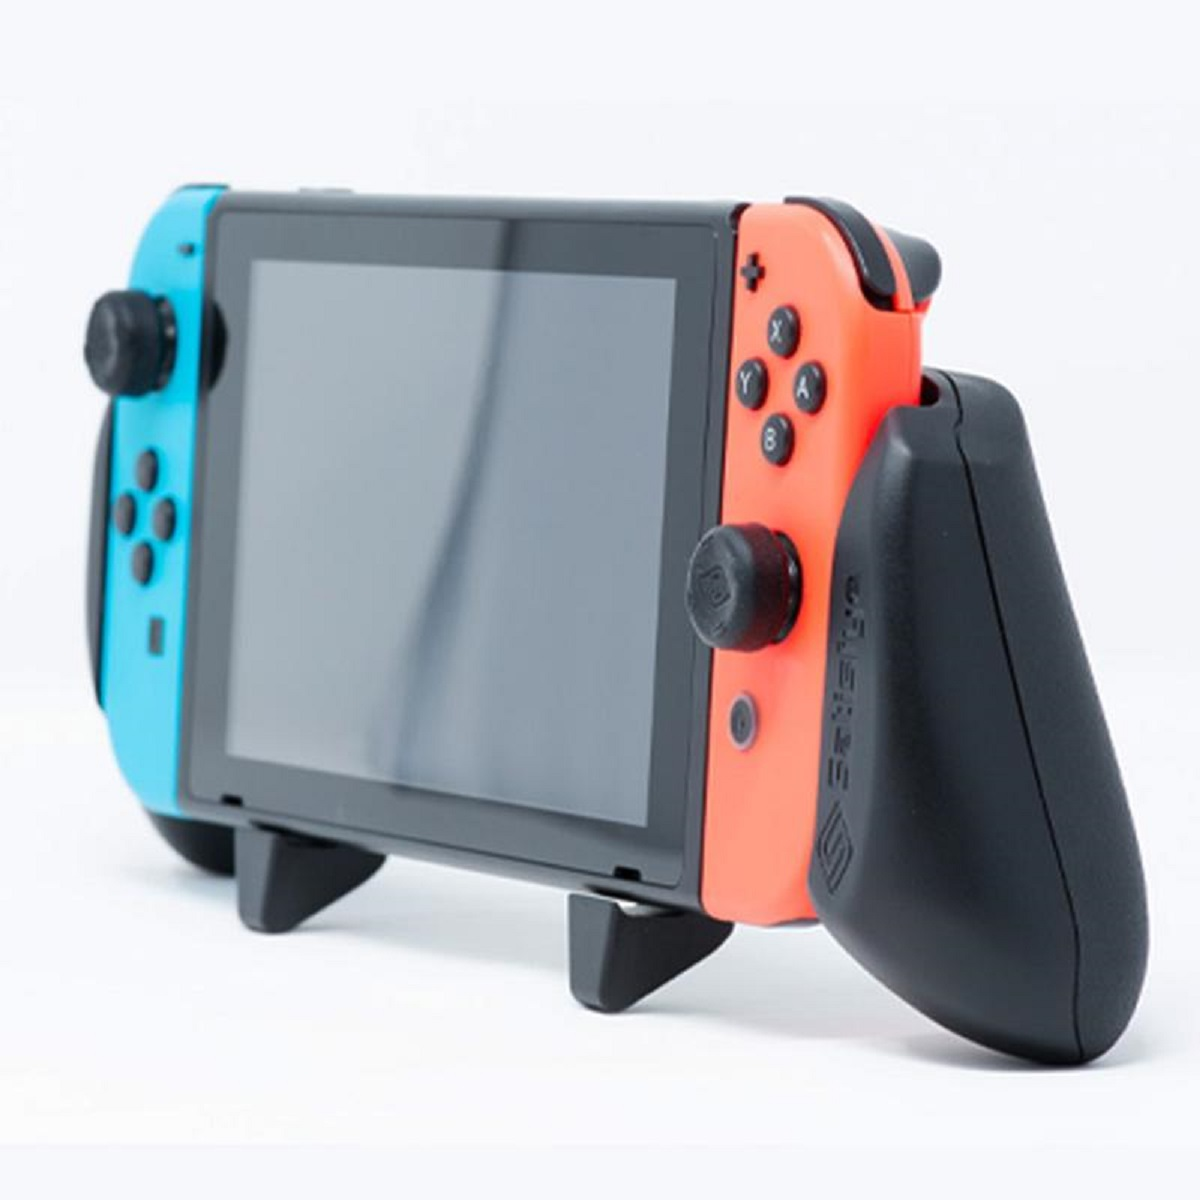 Satisfye Announces The SwitchGrip Pro For The Nintendo Switch